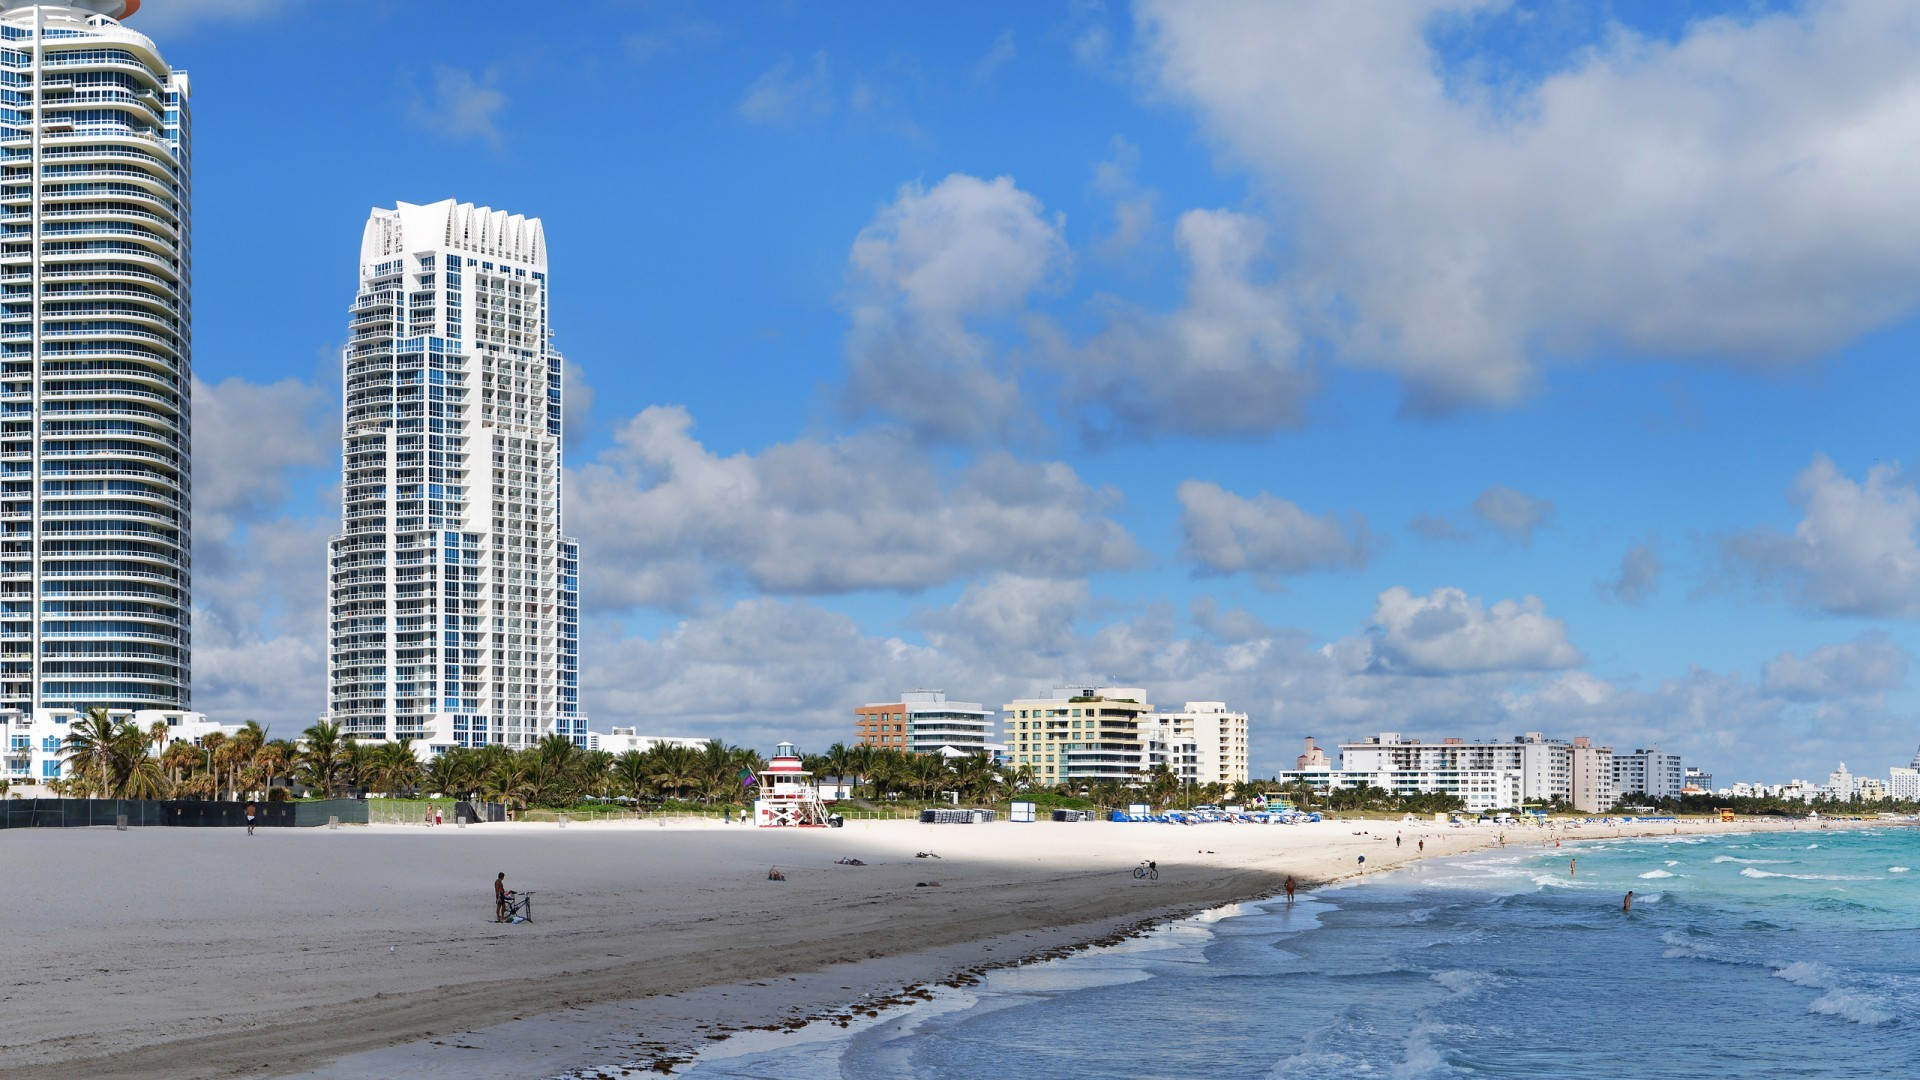 Miami Beach Wallpaper and Backgrounds   ThemeWallpaperscom 1920x1080